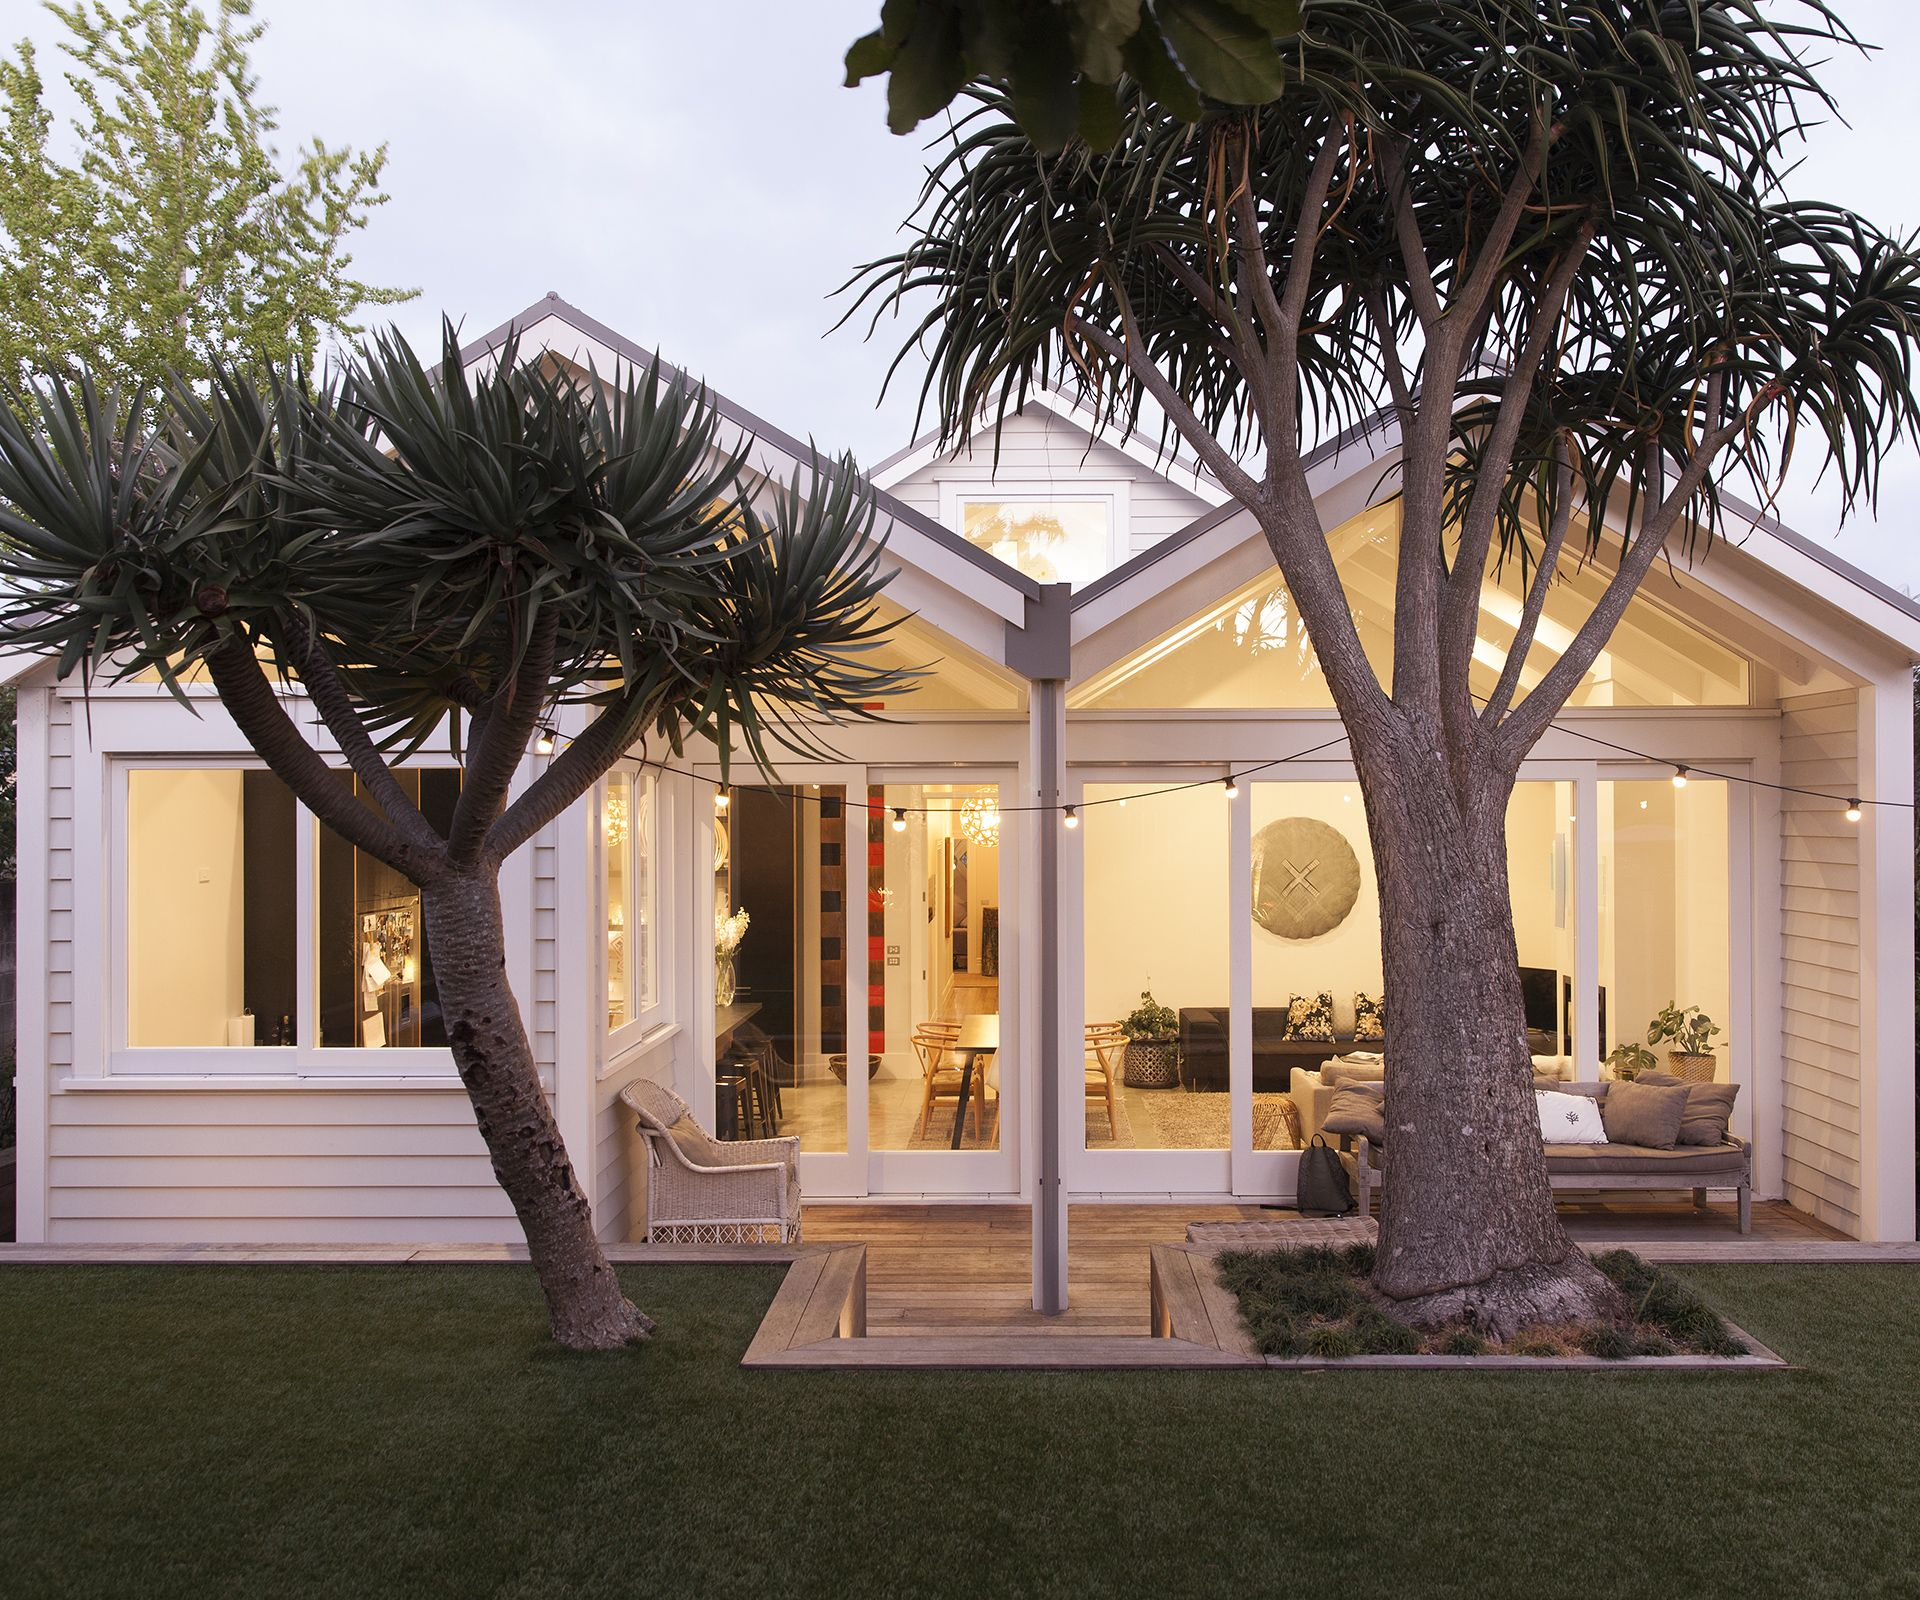 A Clever Gable Manipulation Opens A Bungalow To The Outdoors Bungalow Exterior Facade House Bungalow Renovation